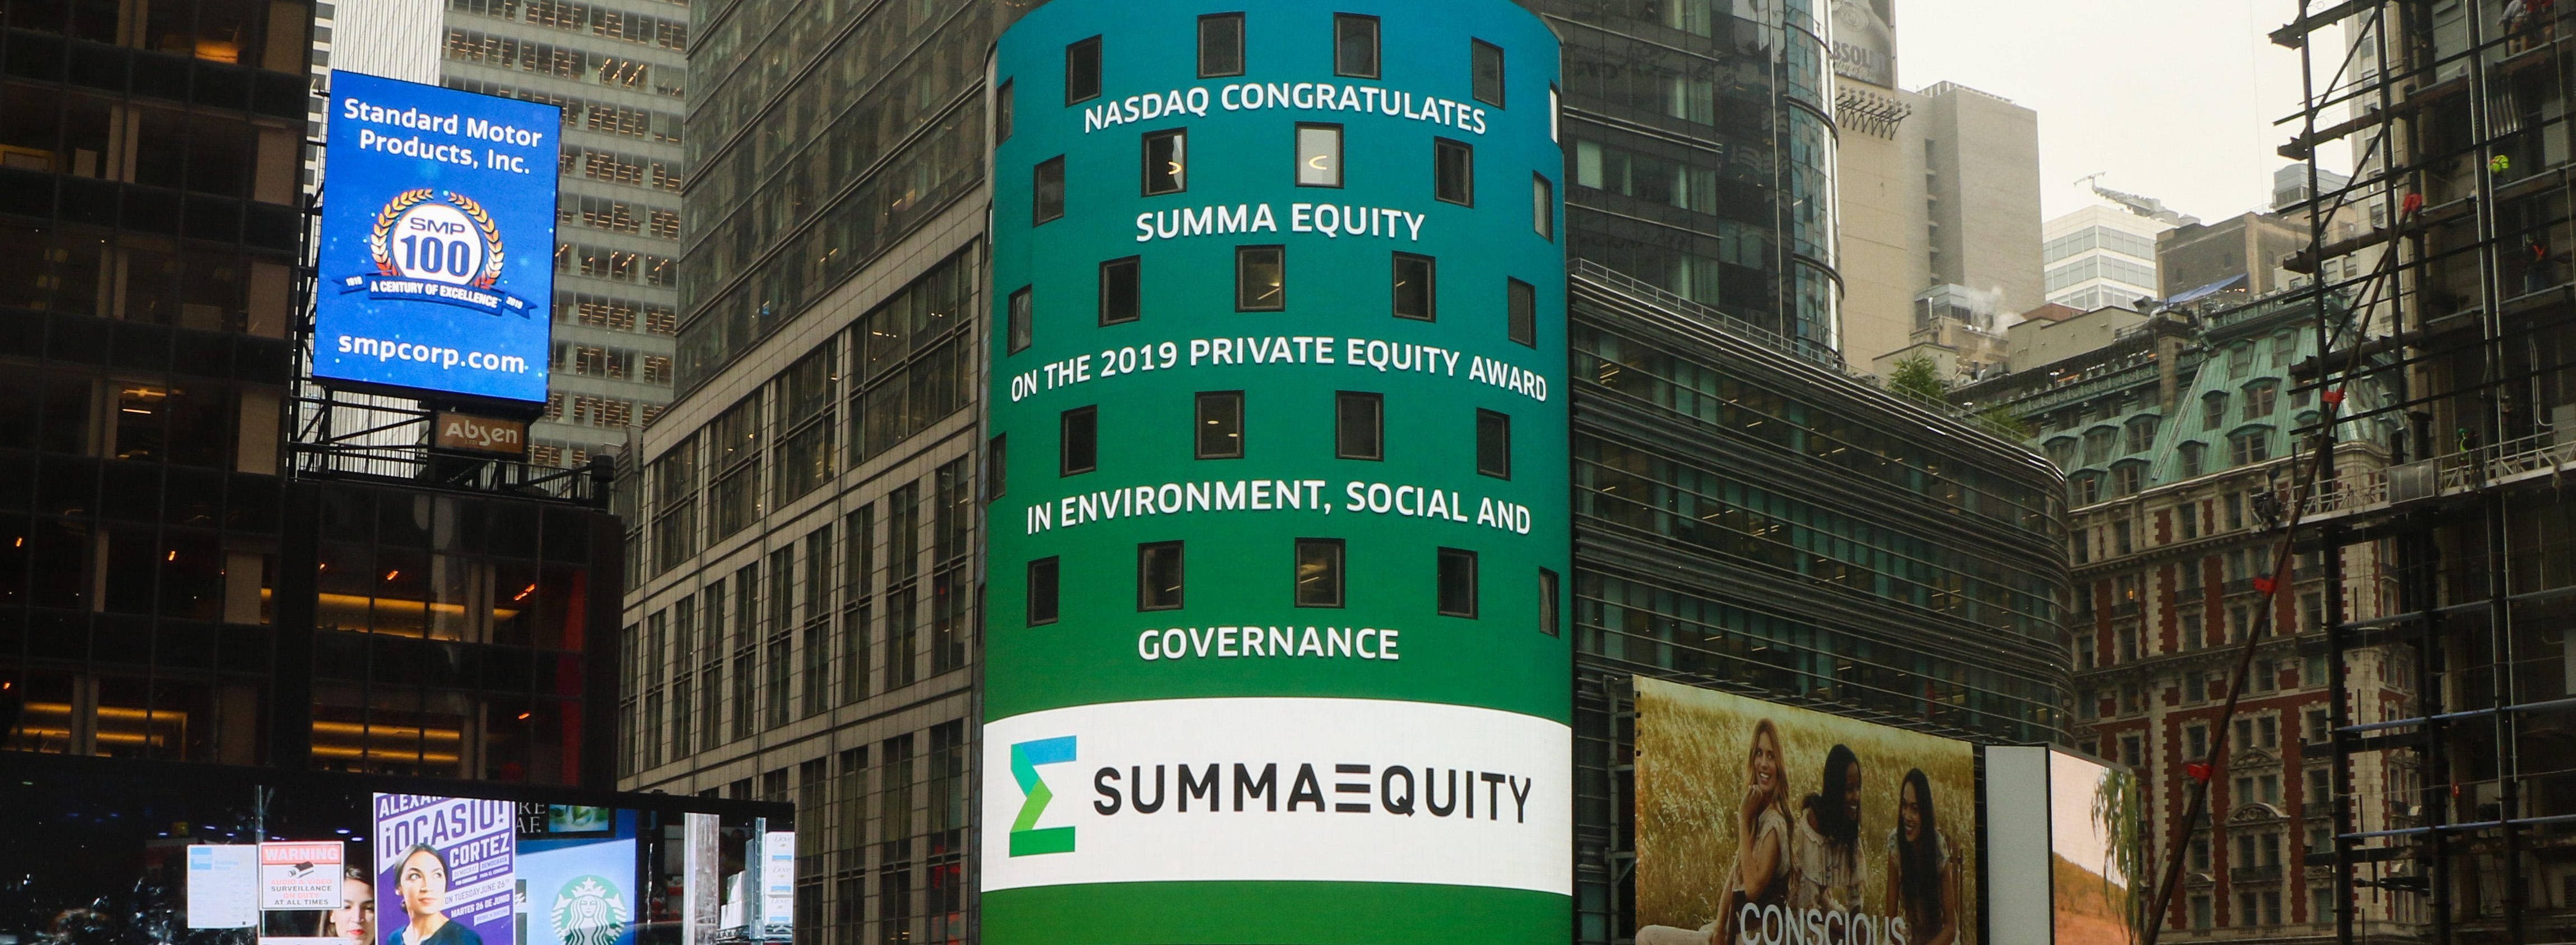 Summa Equity wins ESG Award at the Private Equity Awards 2019